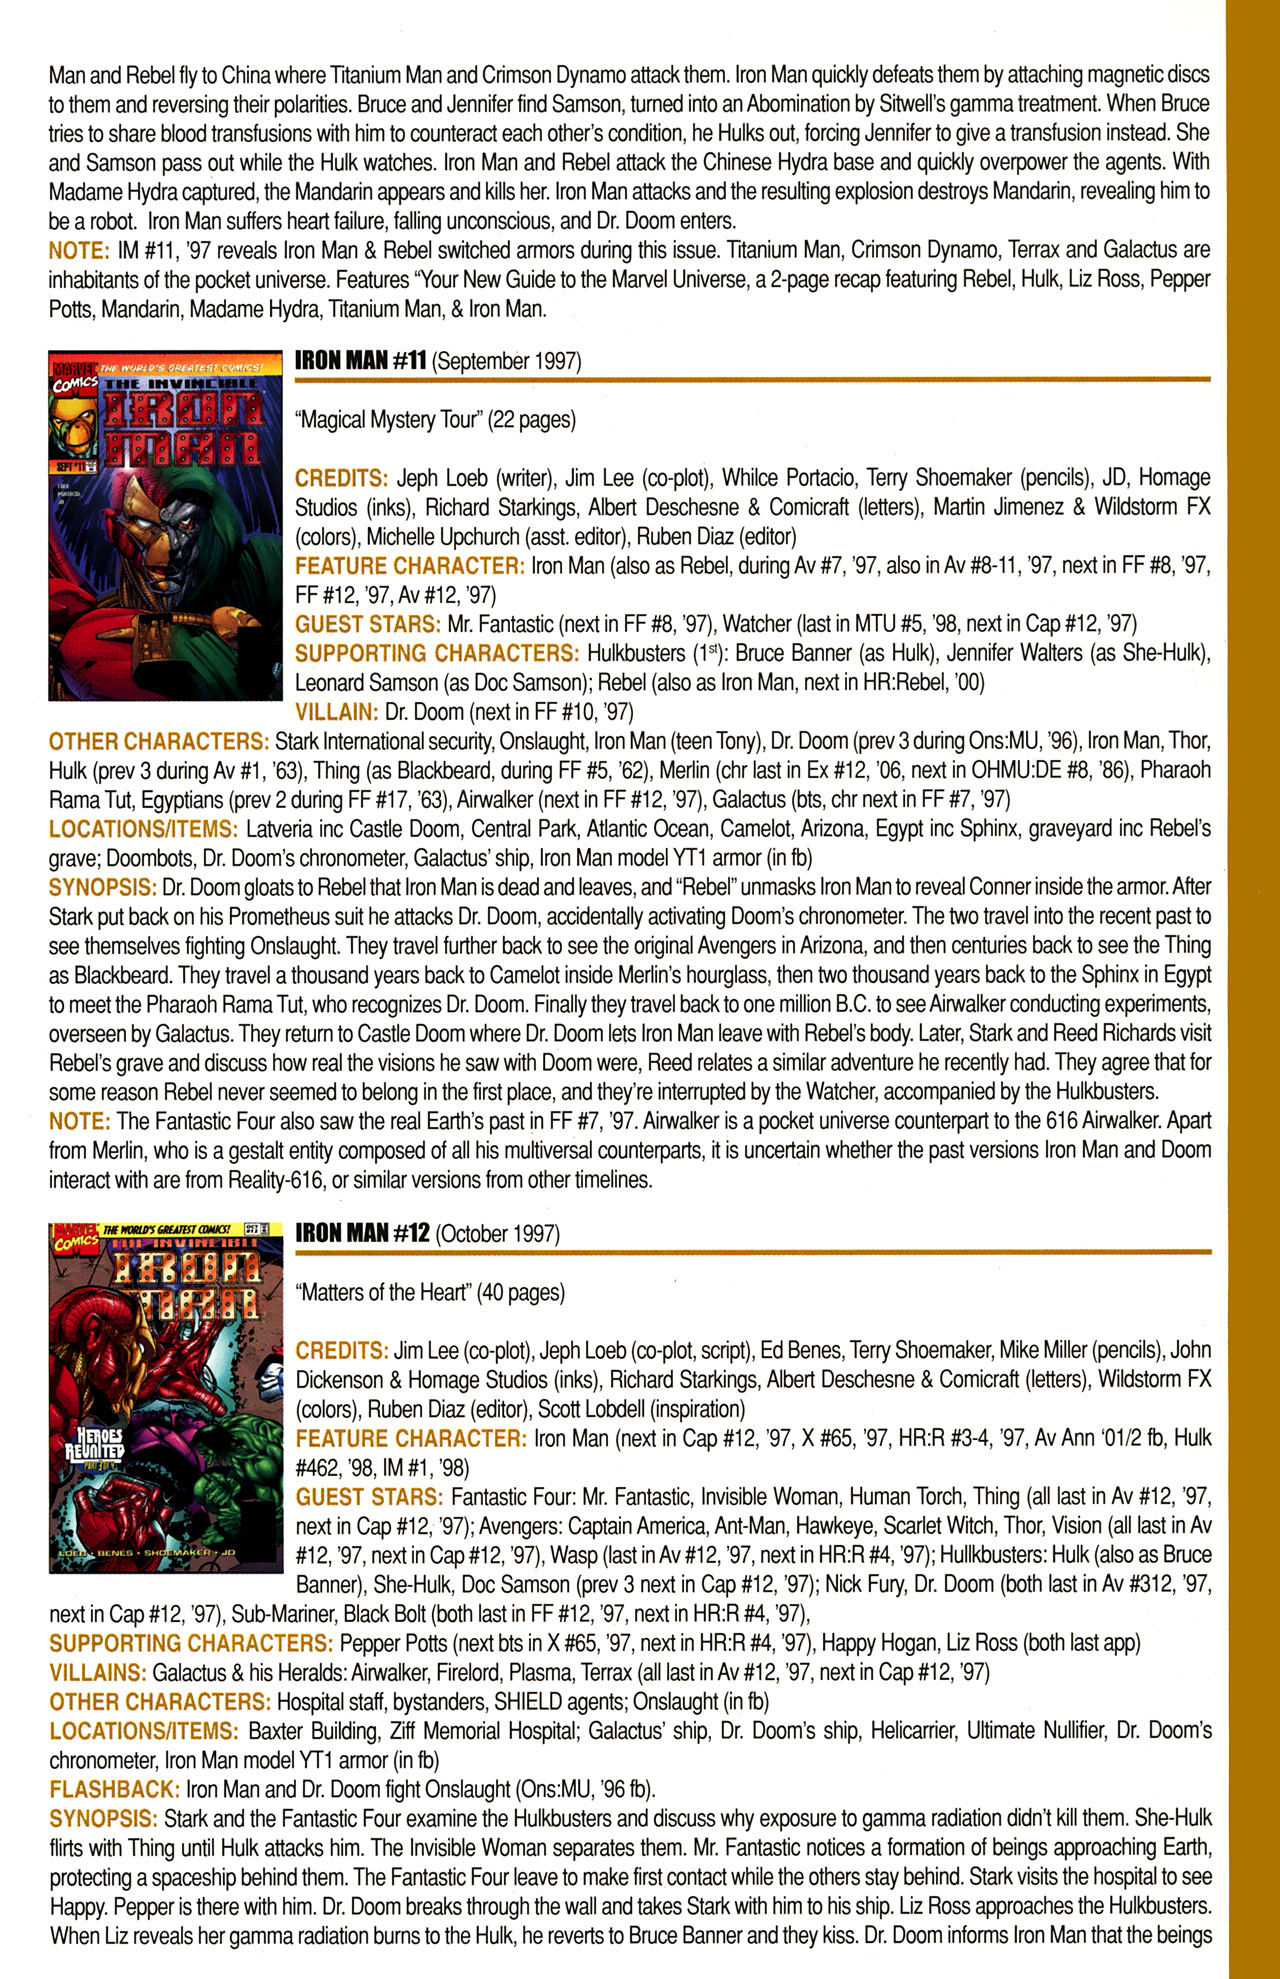 Read online Official Index to the Marvel Universe comic -  Issue #10 - 25